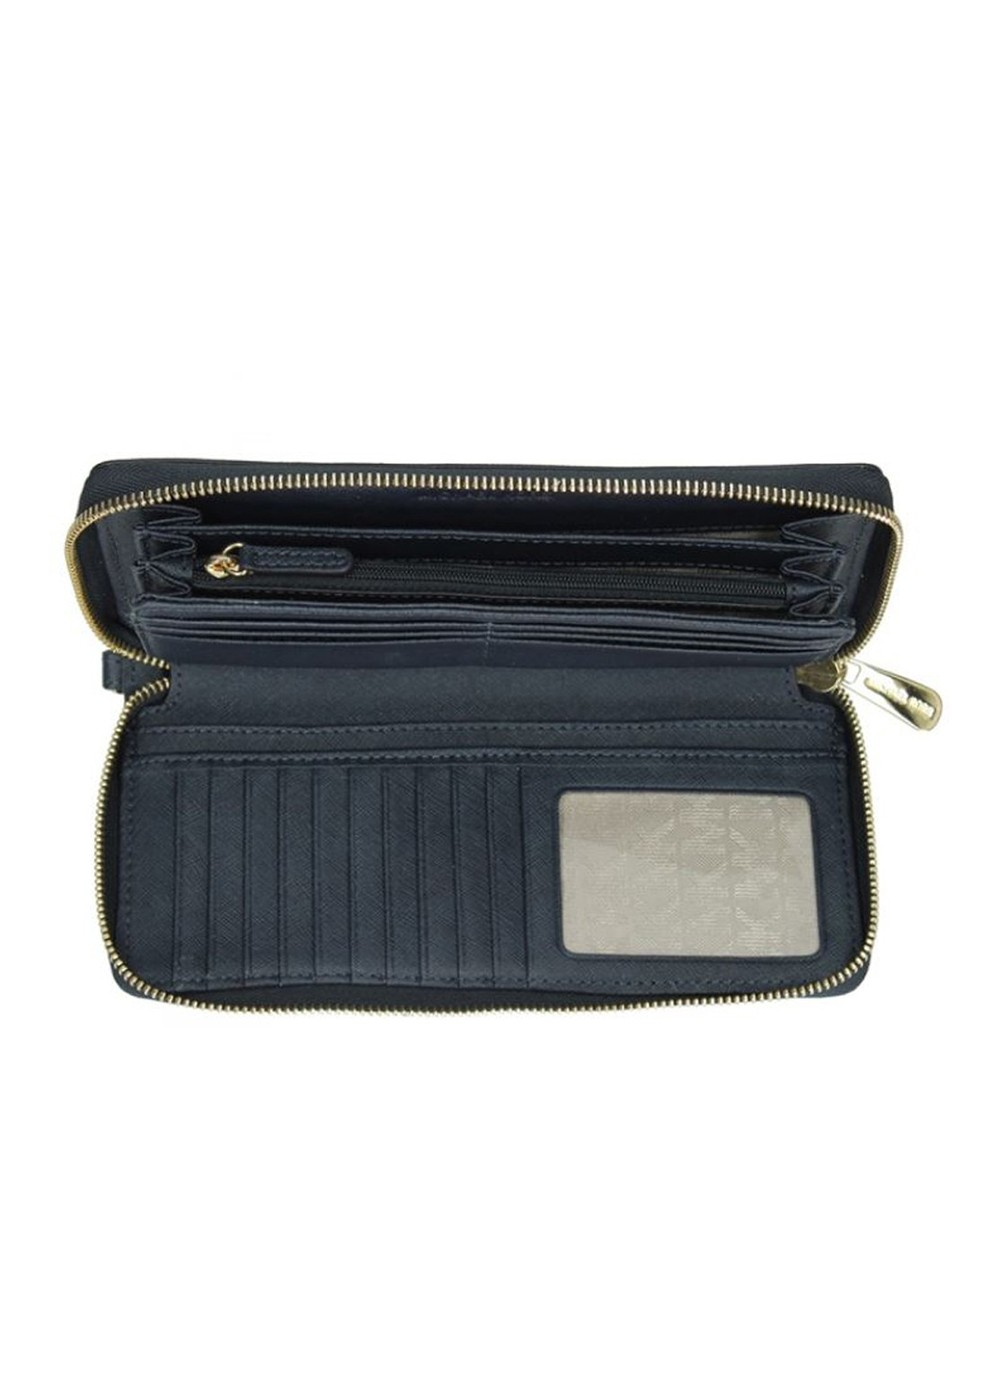 【MICHAEL KORS】Travel Continental Wallet|Admiral|財布|MICHAEL KORS (N)